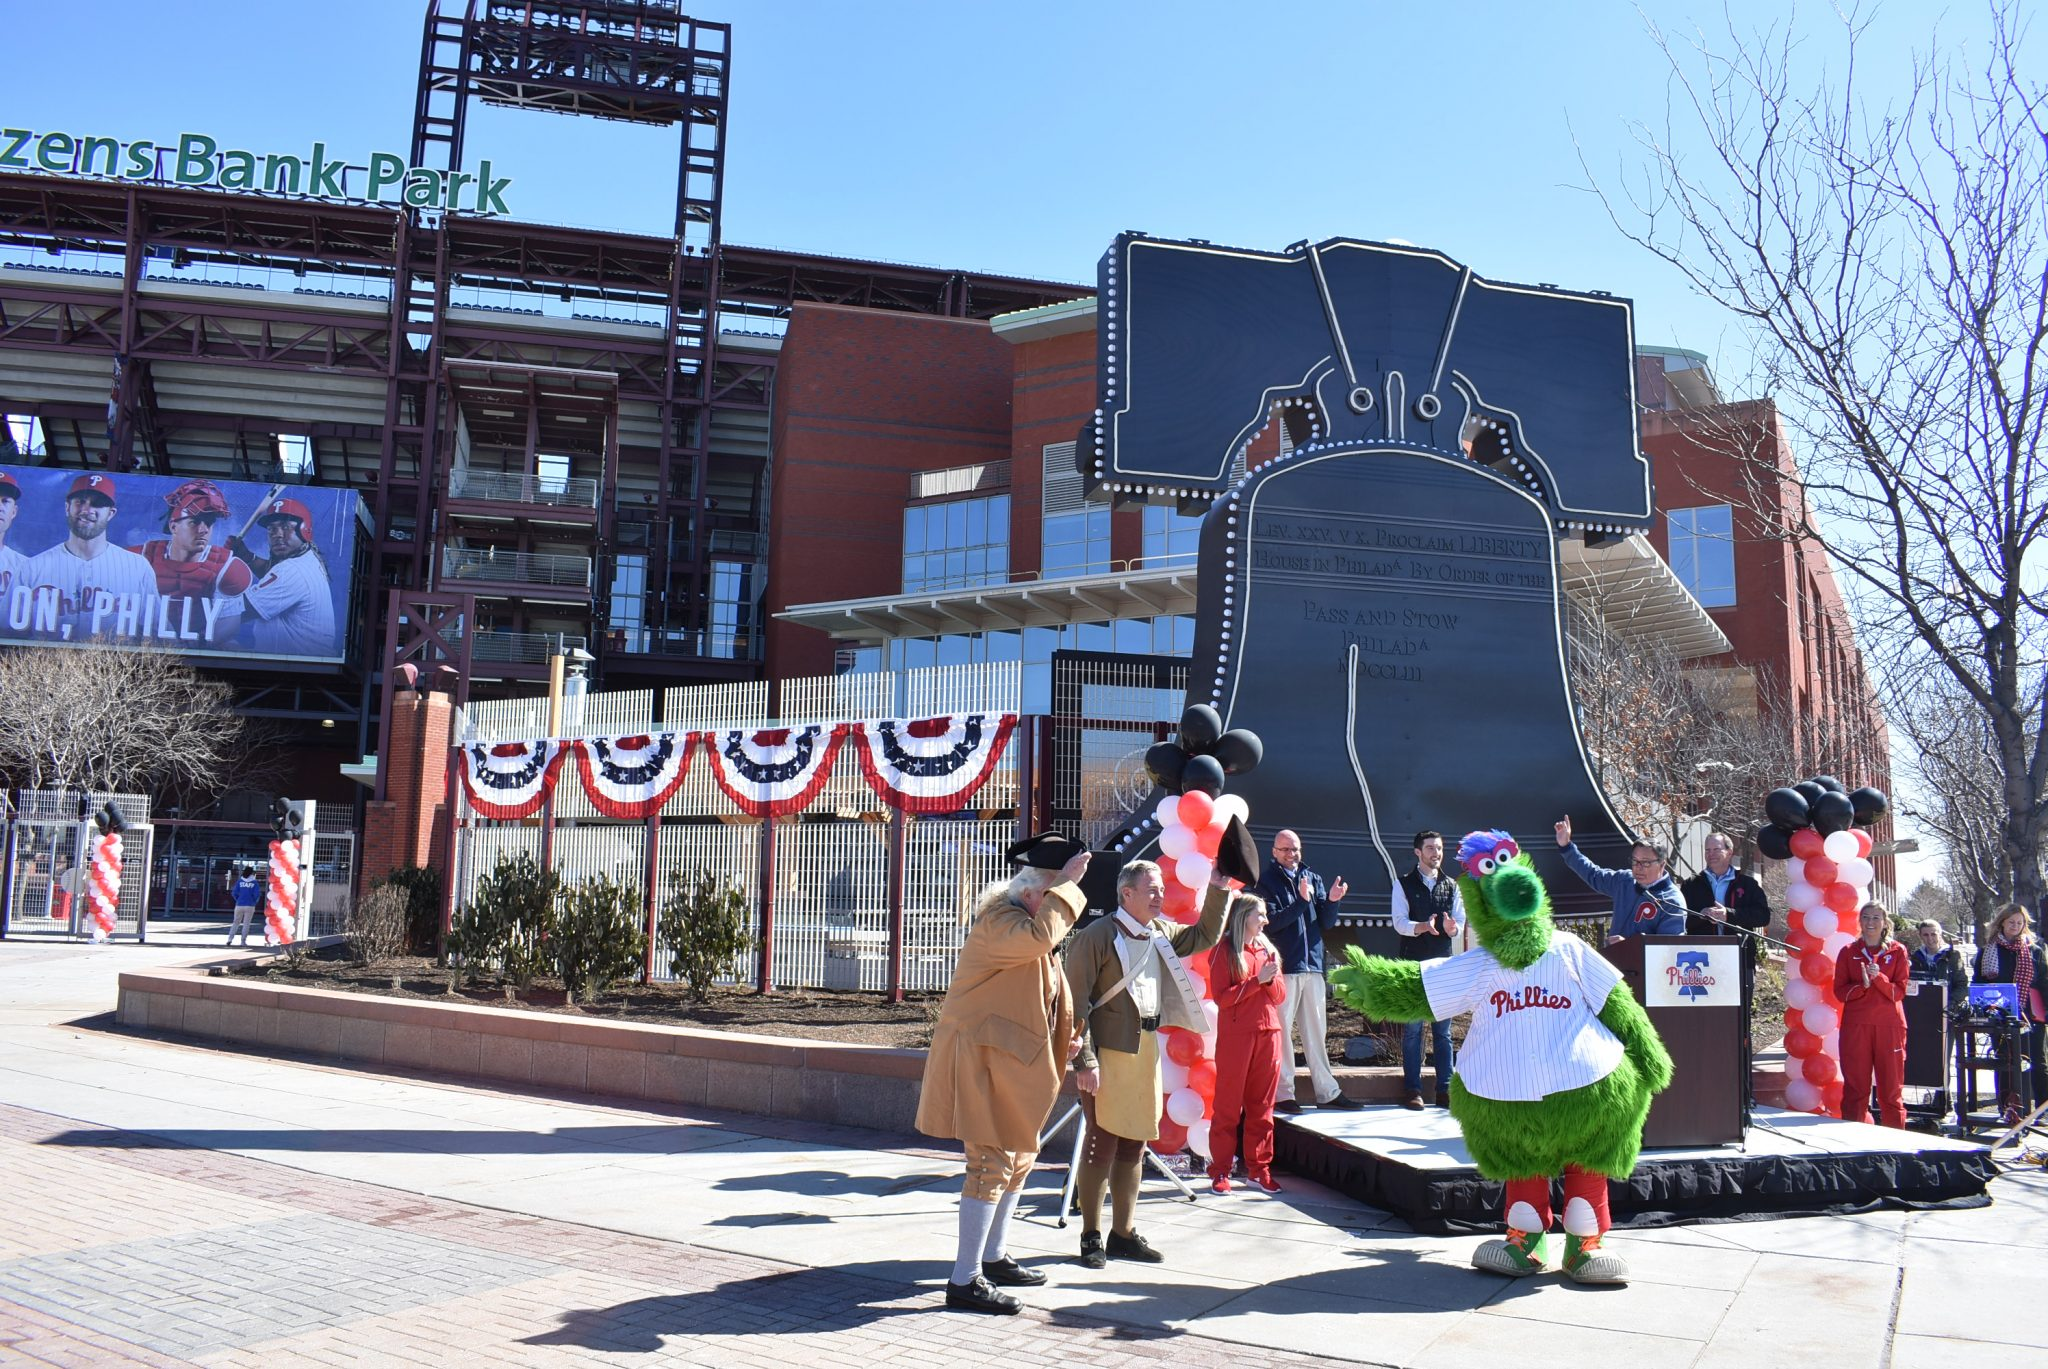 6543dcd53910 The liberty bell from Veterans Stadium was tracked down from a local  scrapyard and erected at the third base gate in Citizens Bank Park